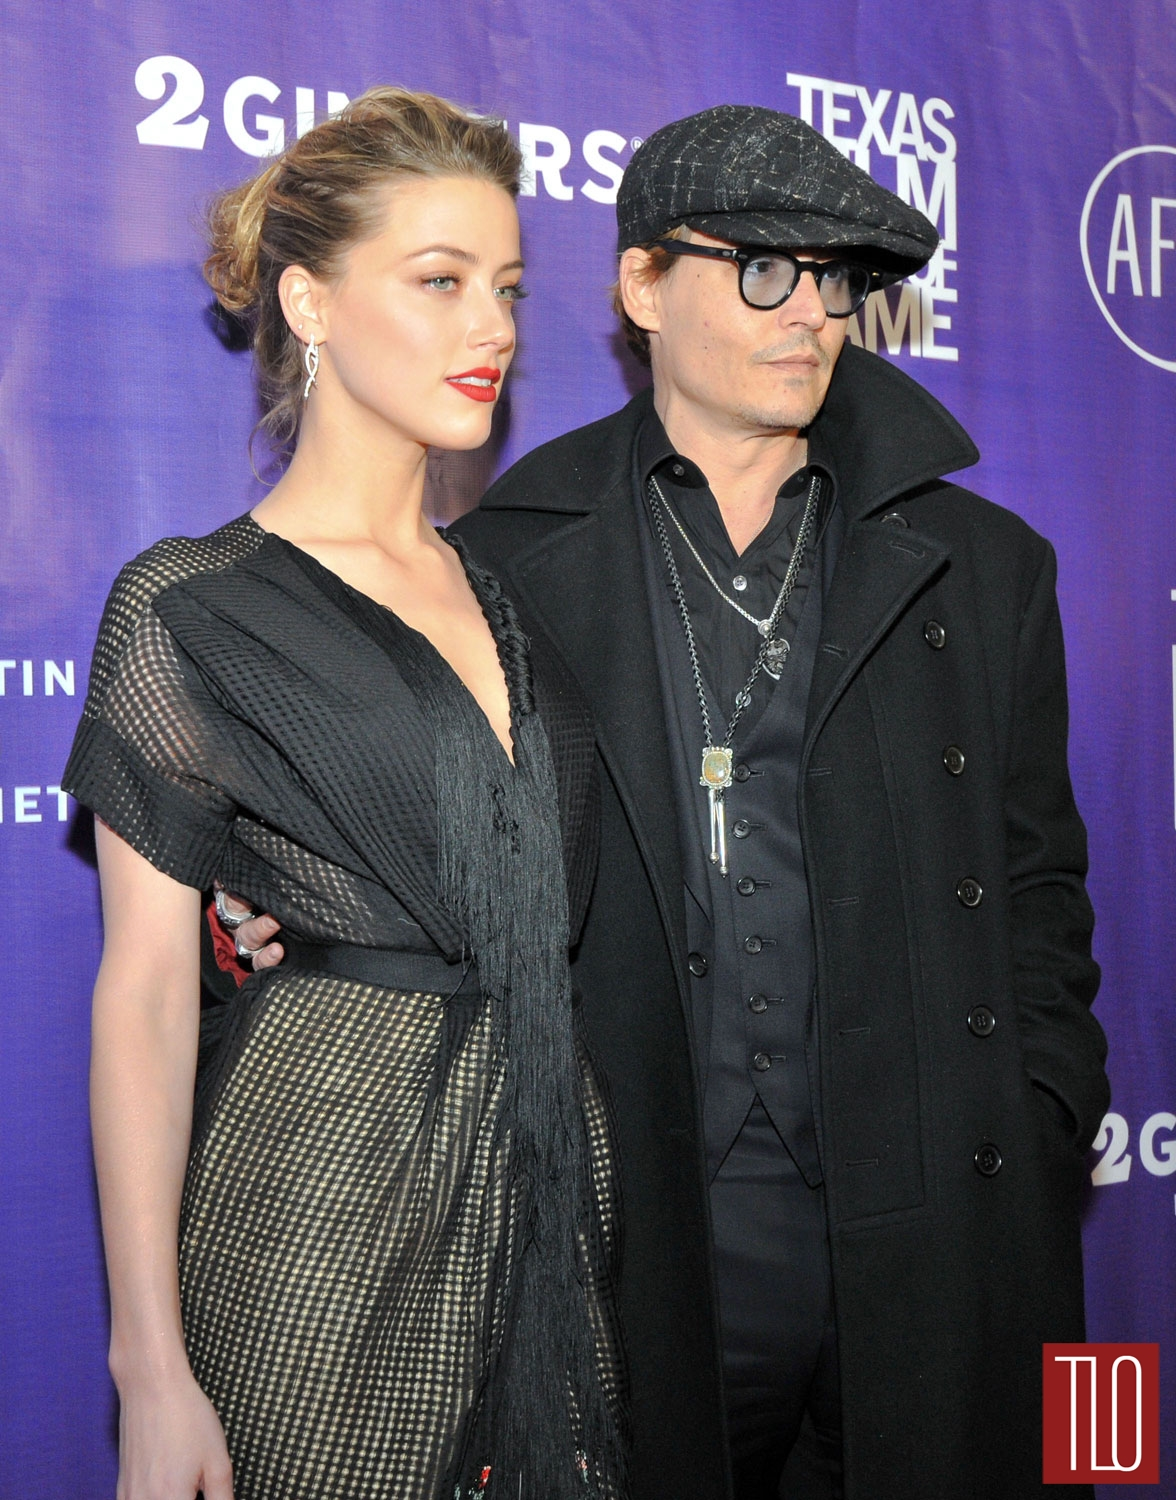 Amber-Heard-Johnny-Depp-Texas-Film-Awards-Tom-Lorenzo-Site-TLO (1)